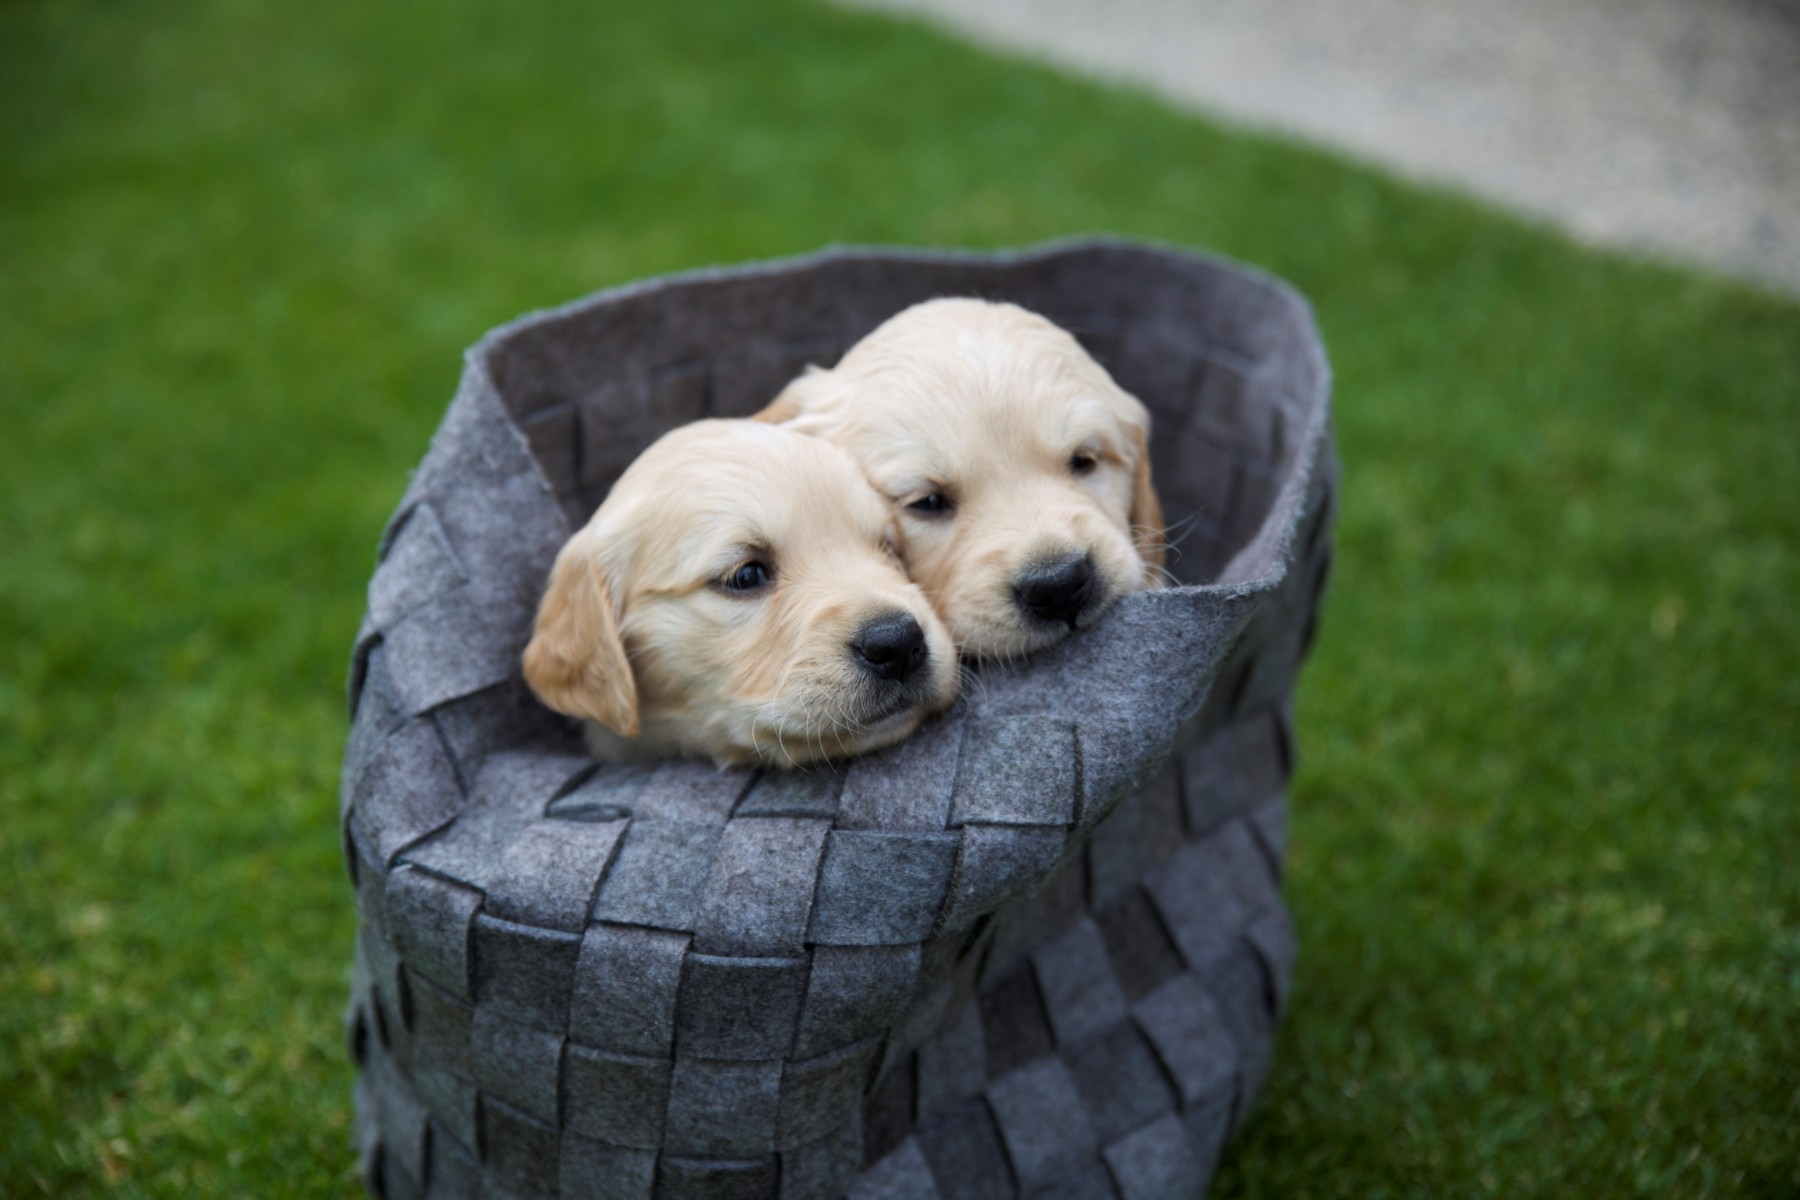 Puppies in a bag